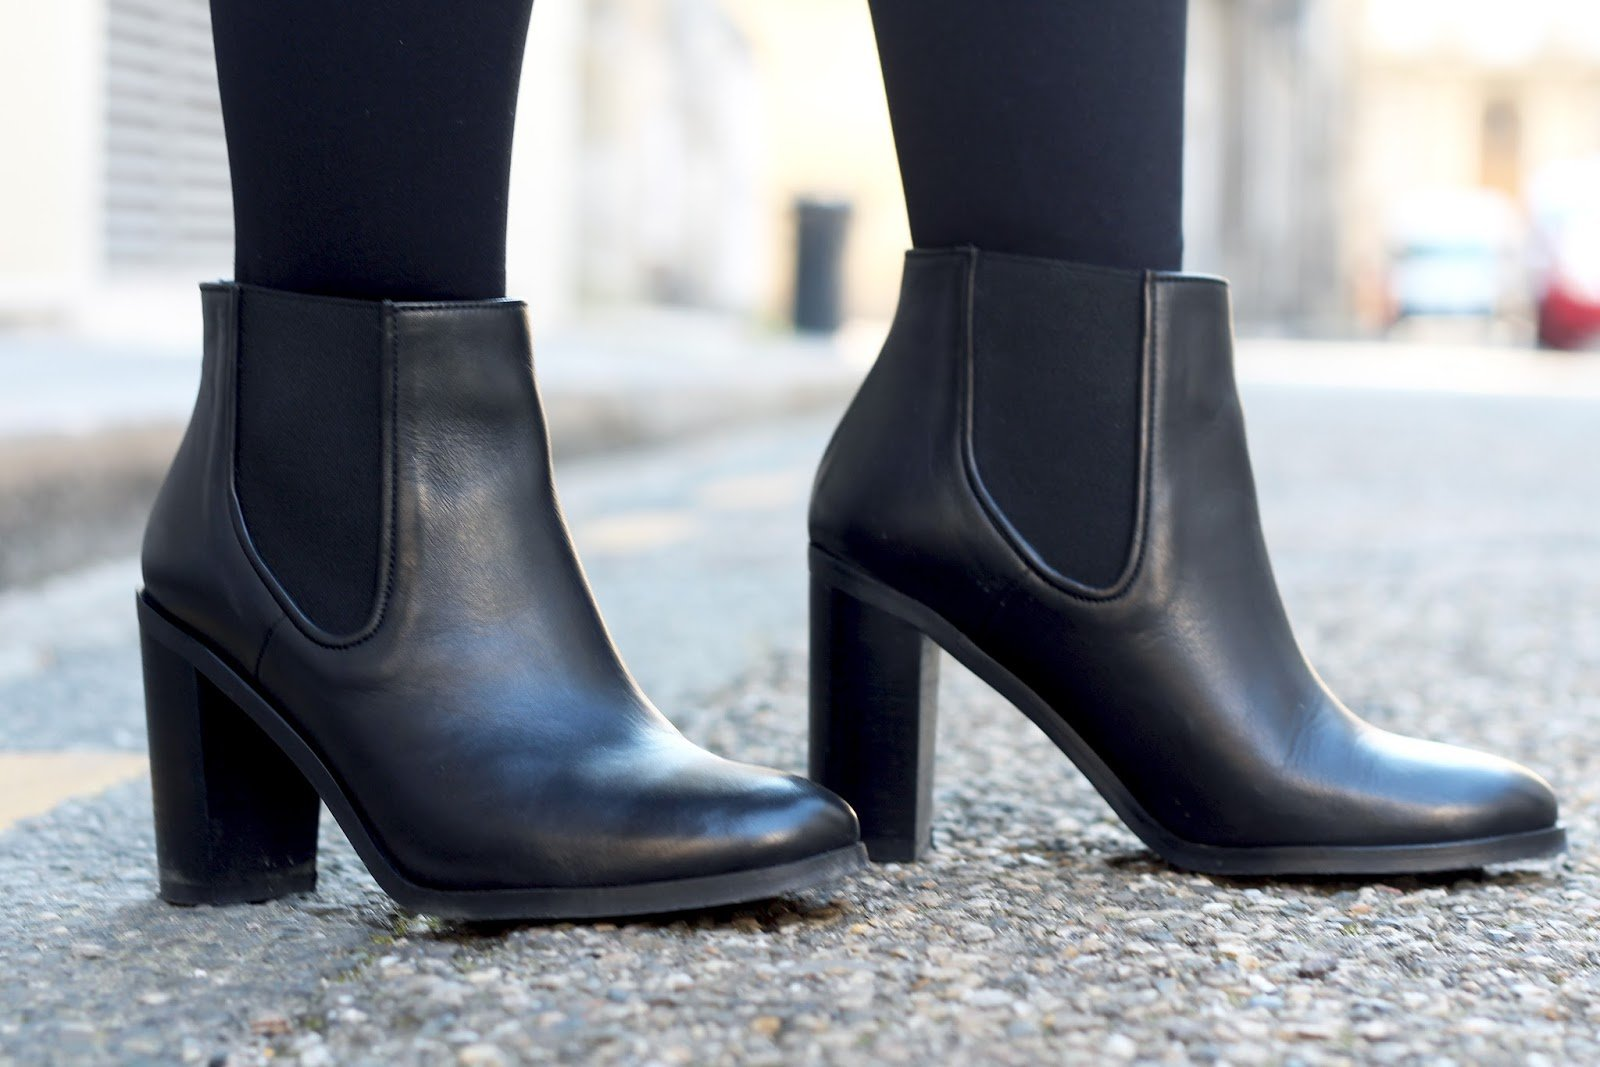 Bottines noires talons